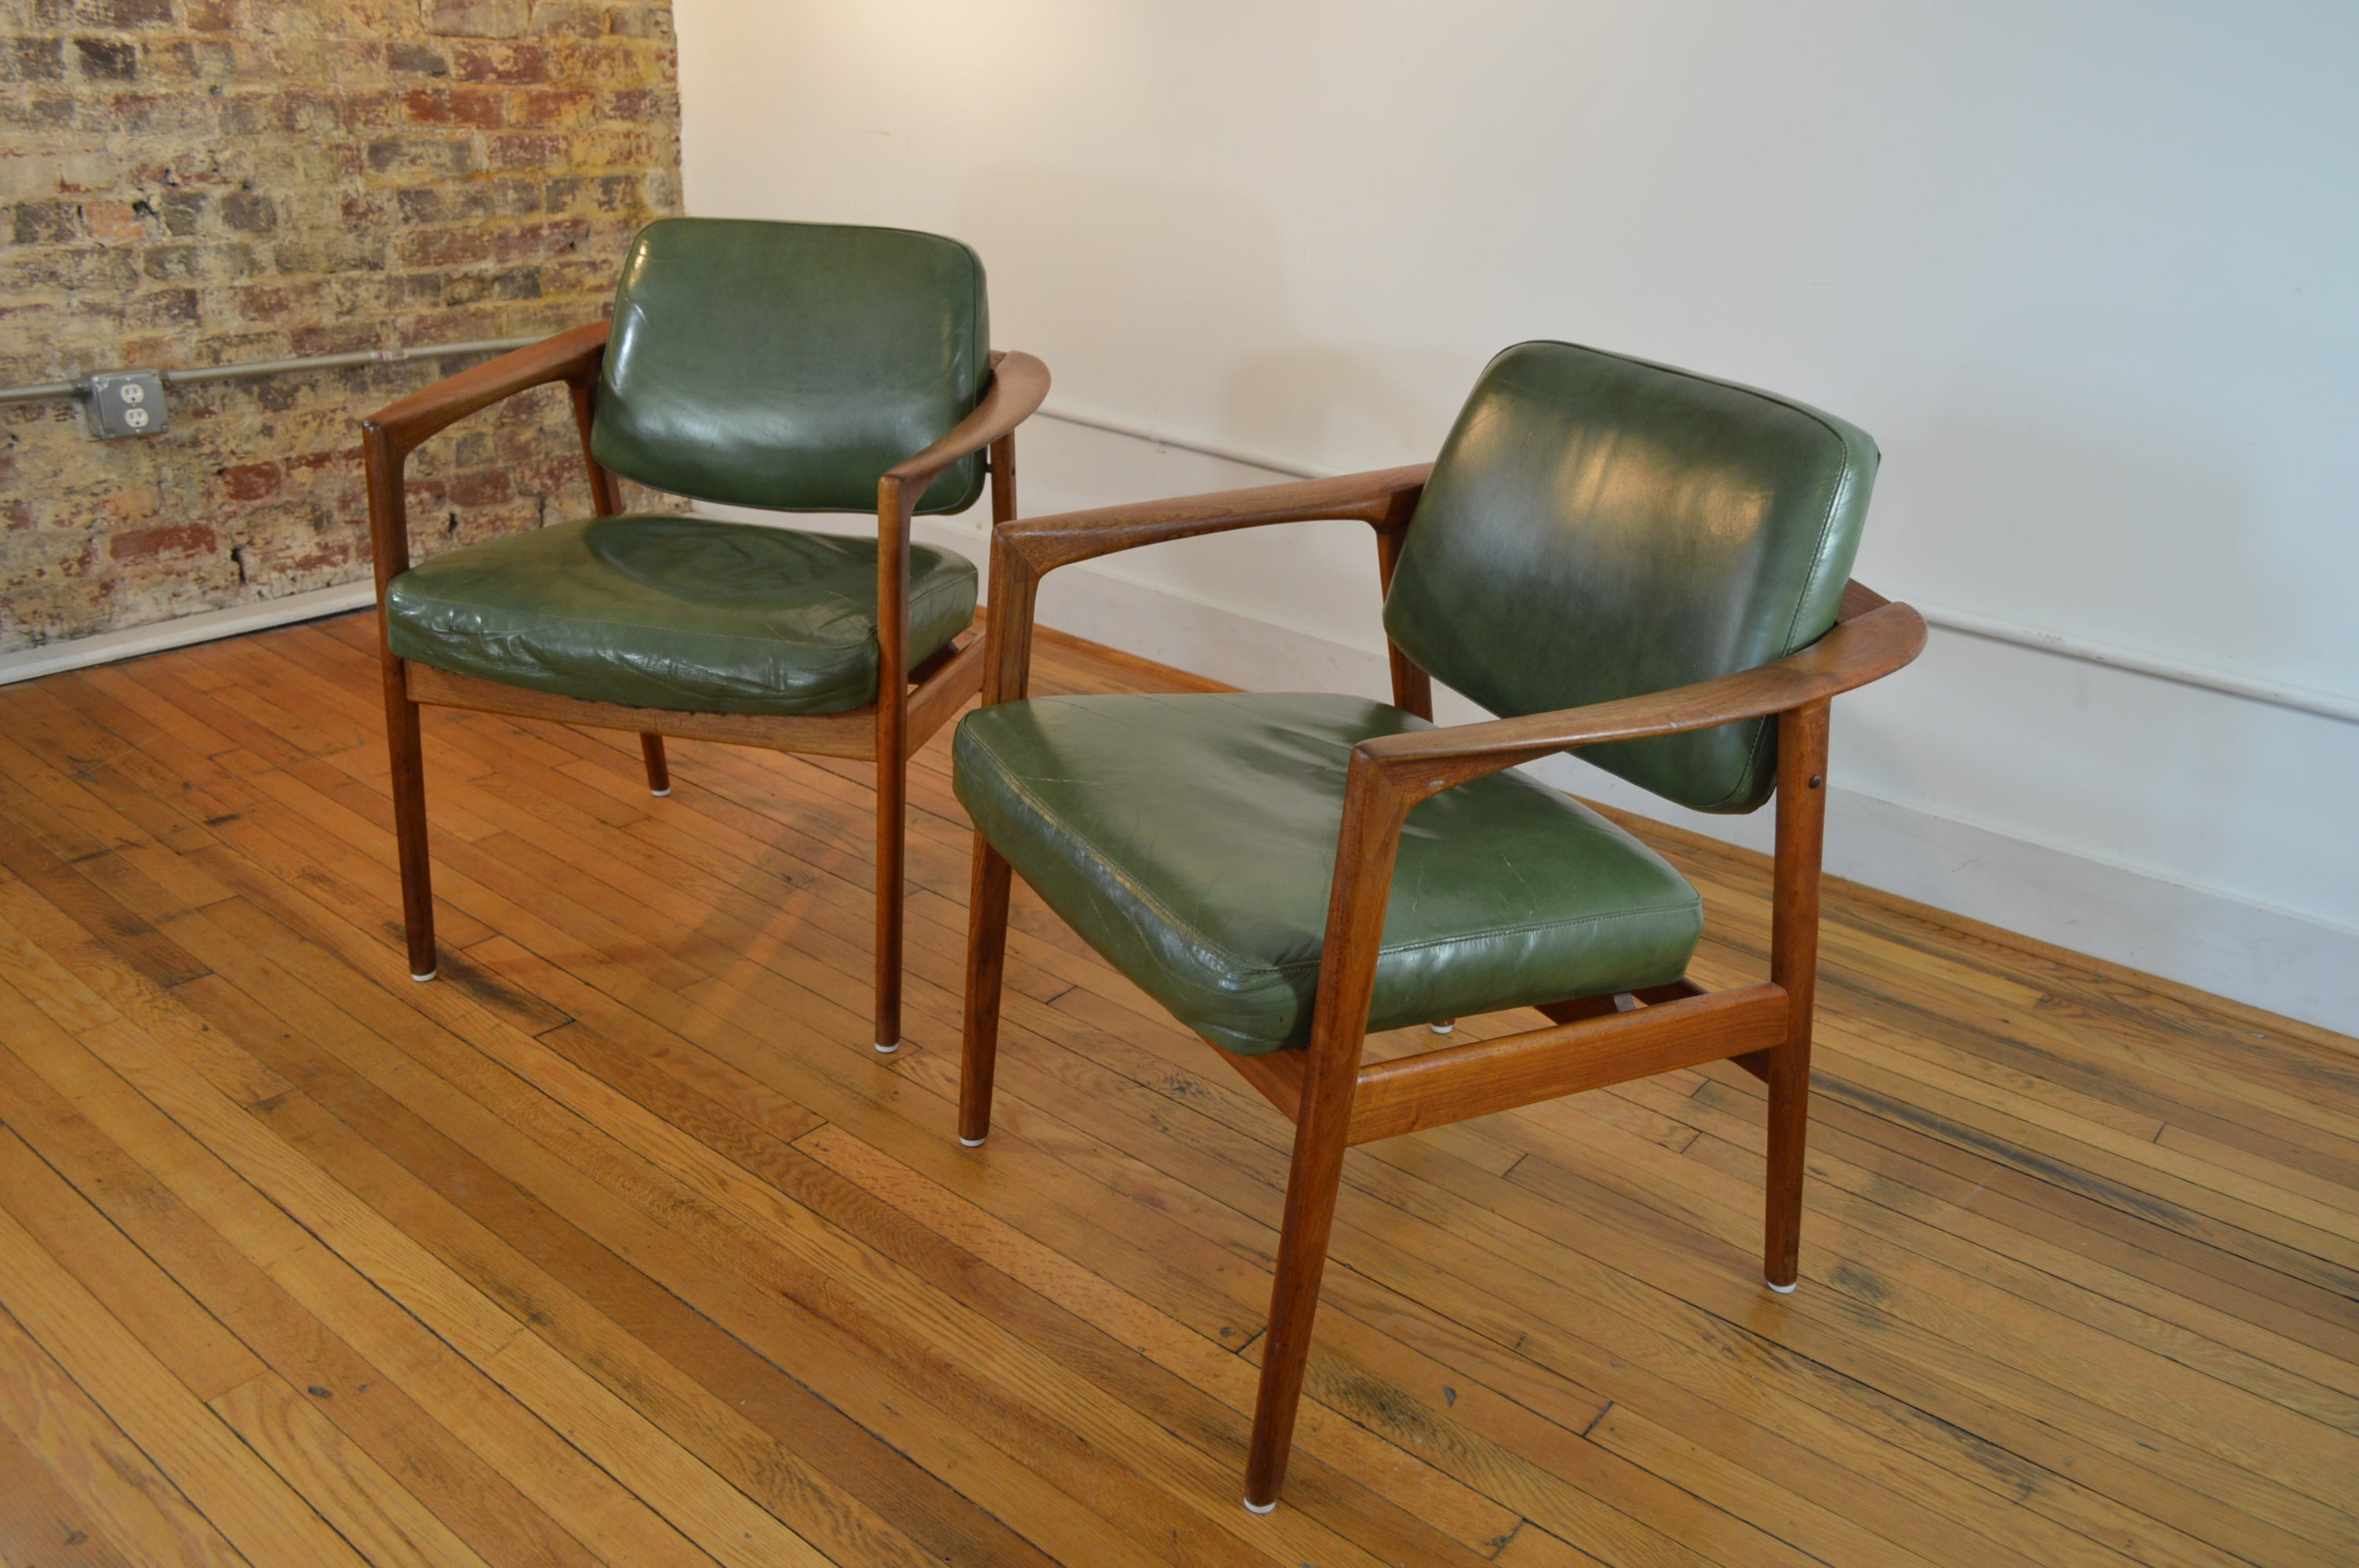 Beautiful Folke Ohlsson For DUX Sweden Teak And Leather Arm Chairs